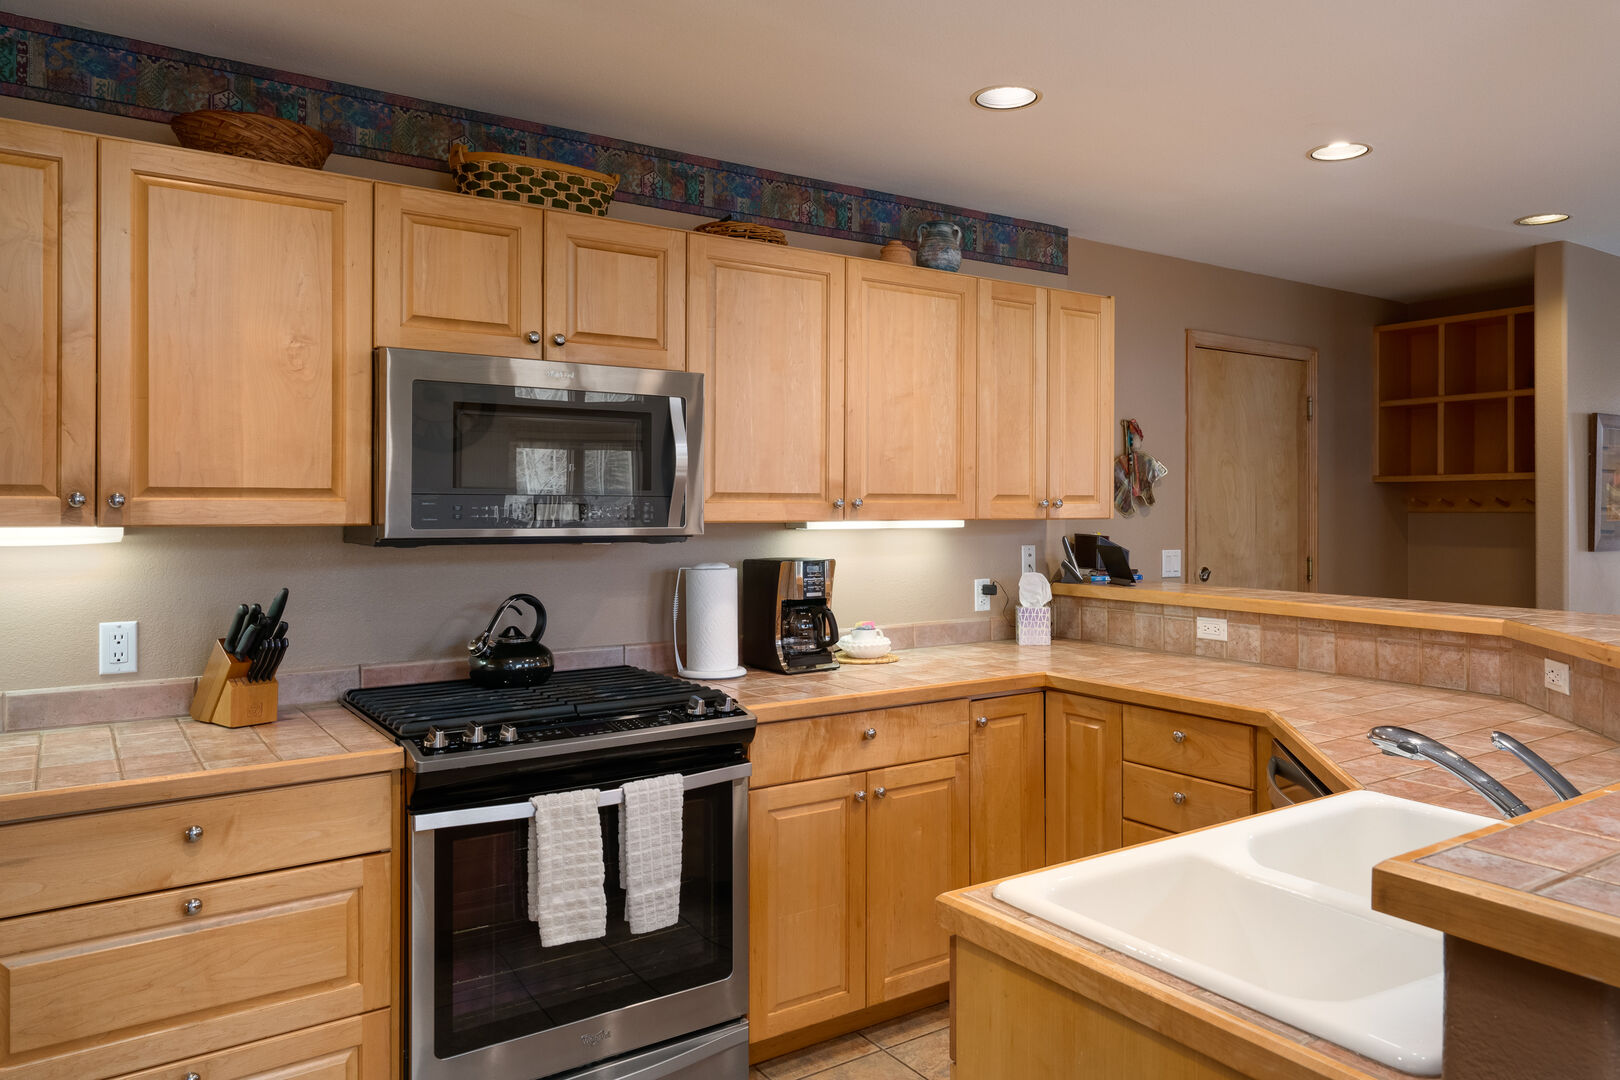 Plenty of storage and counter space in our kitchen.